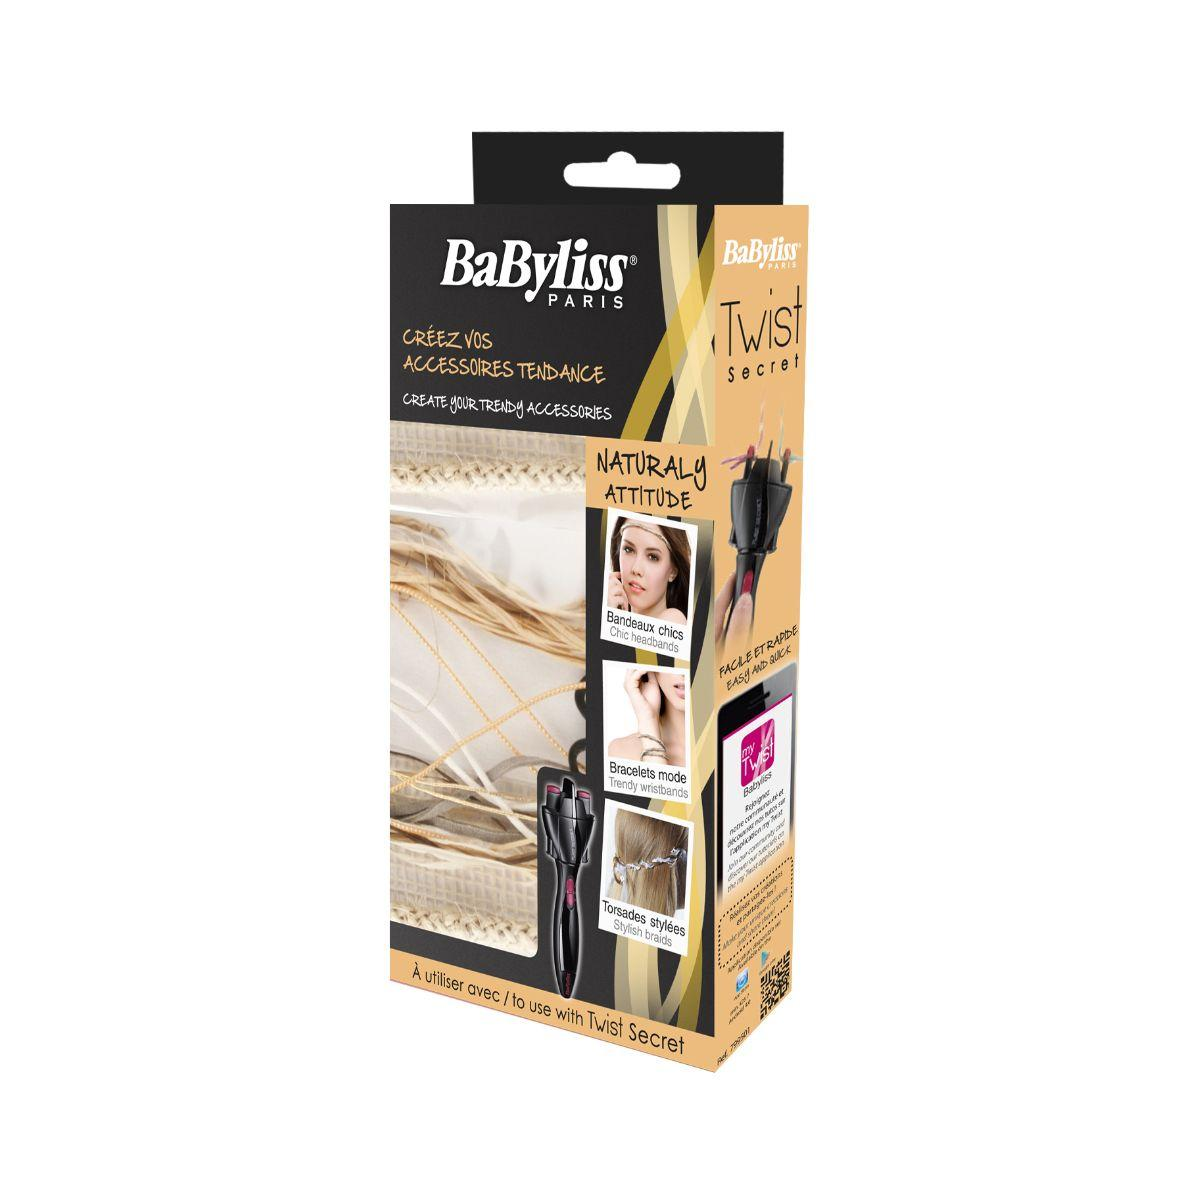 Babyliss kit accessoires twist naturaly (photo)